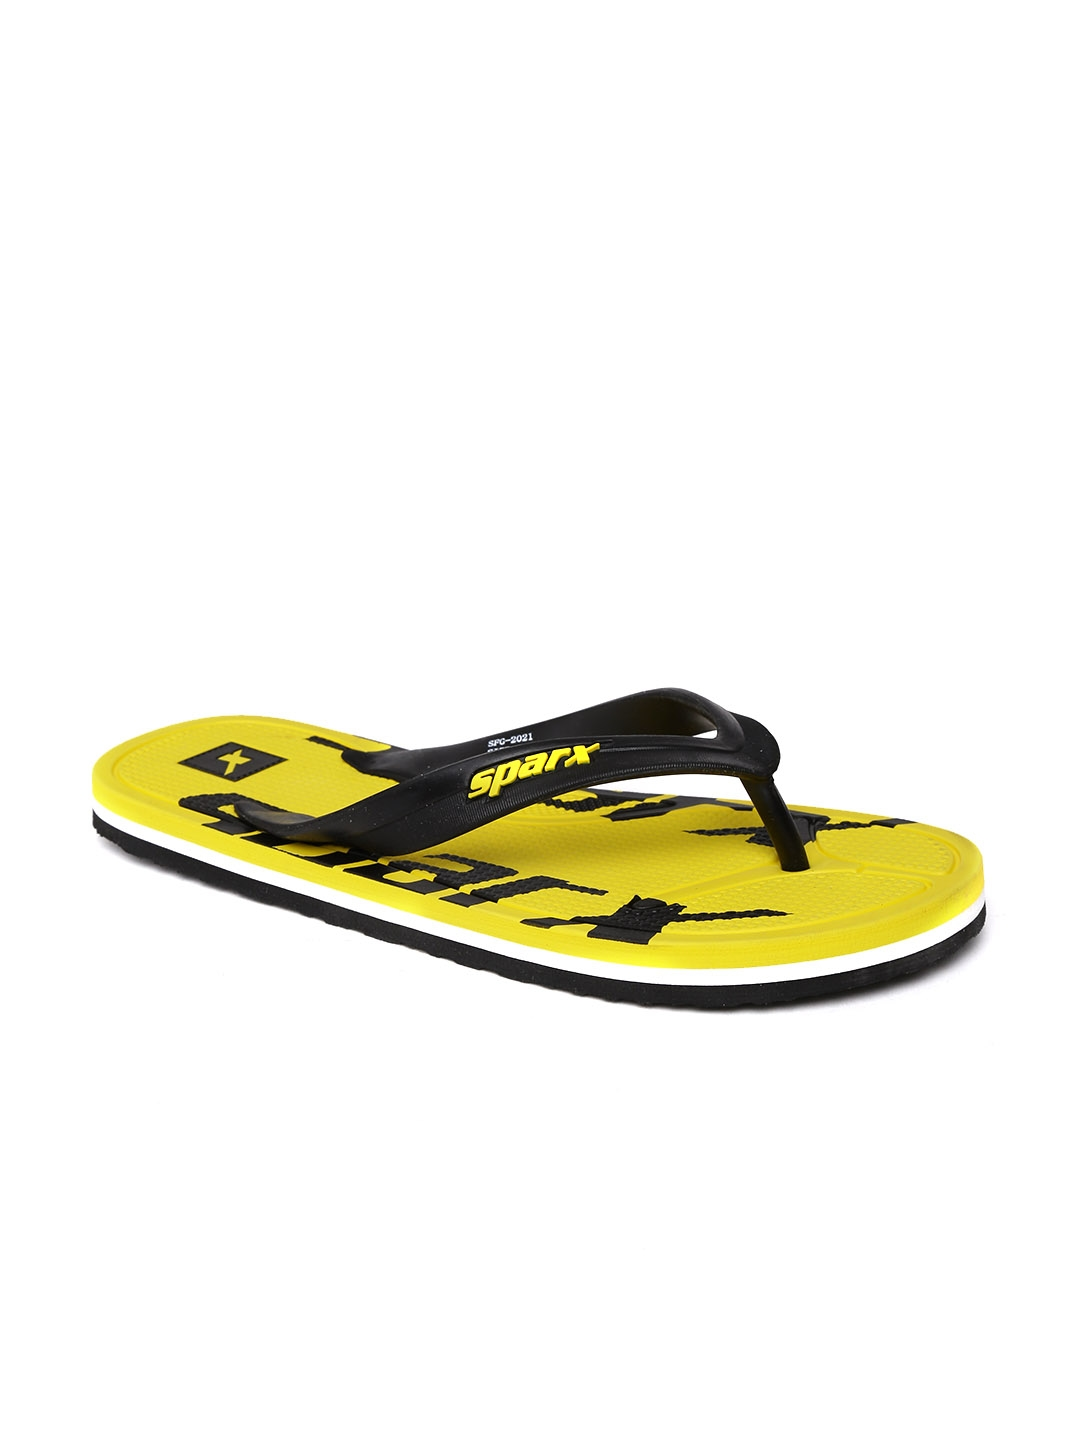 a96e723aa5ff Buy Sparx Men Black   Yellow Printed Flip Flops - Flip Flops for Men ...